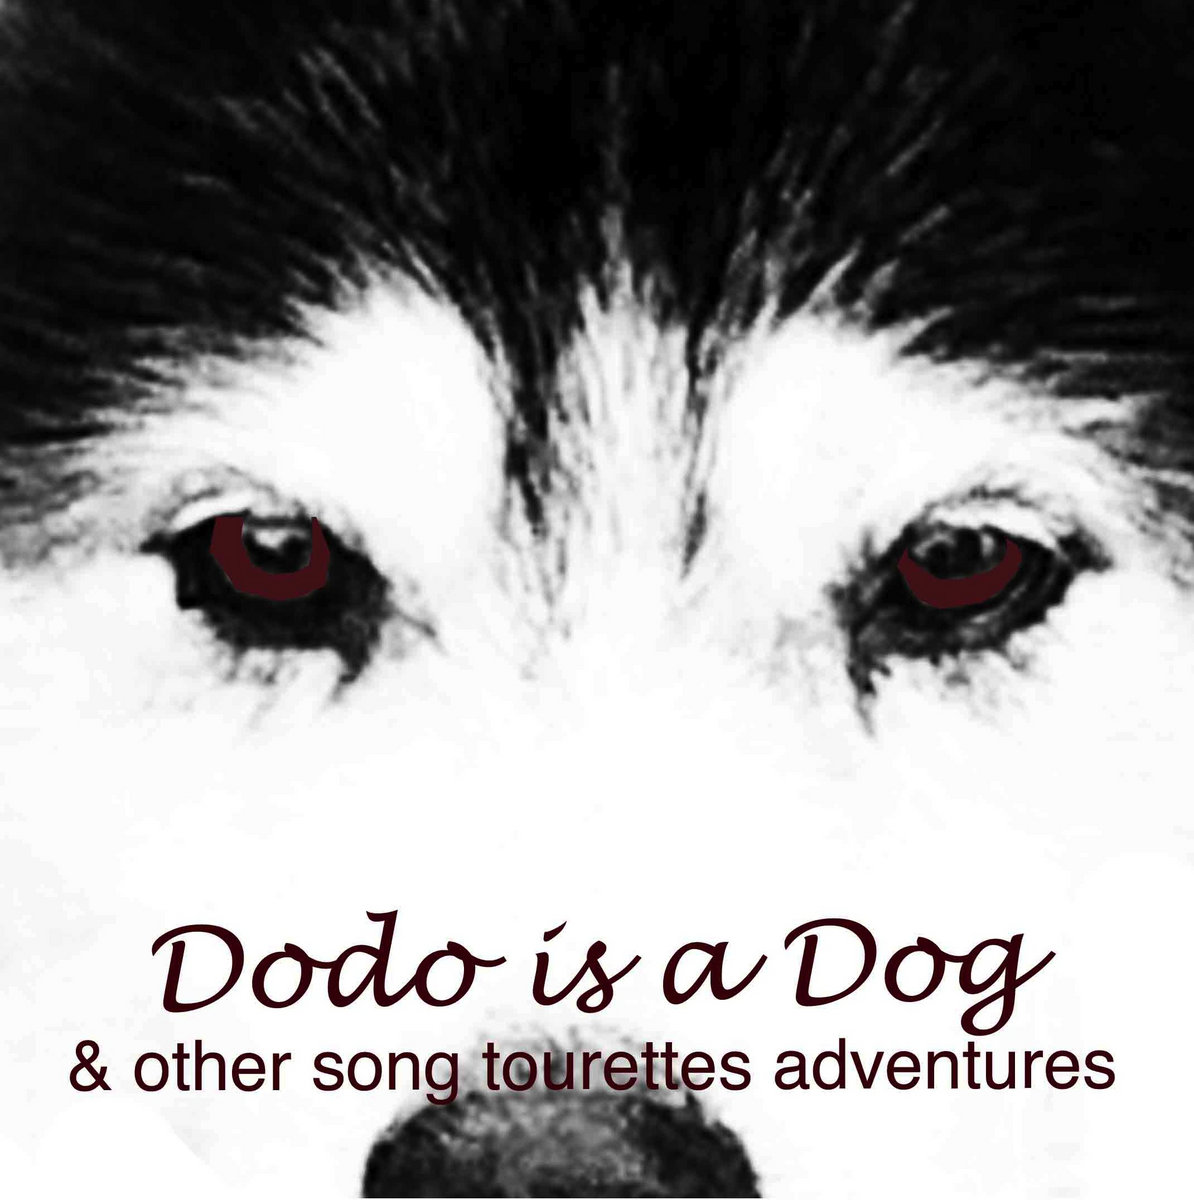 DODO IS A DOG [and other song tourettes adventures